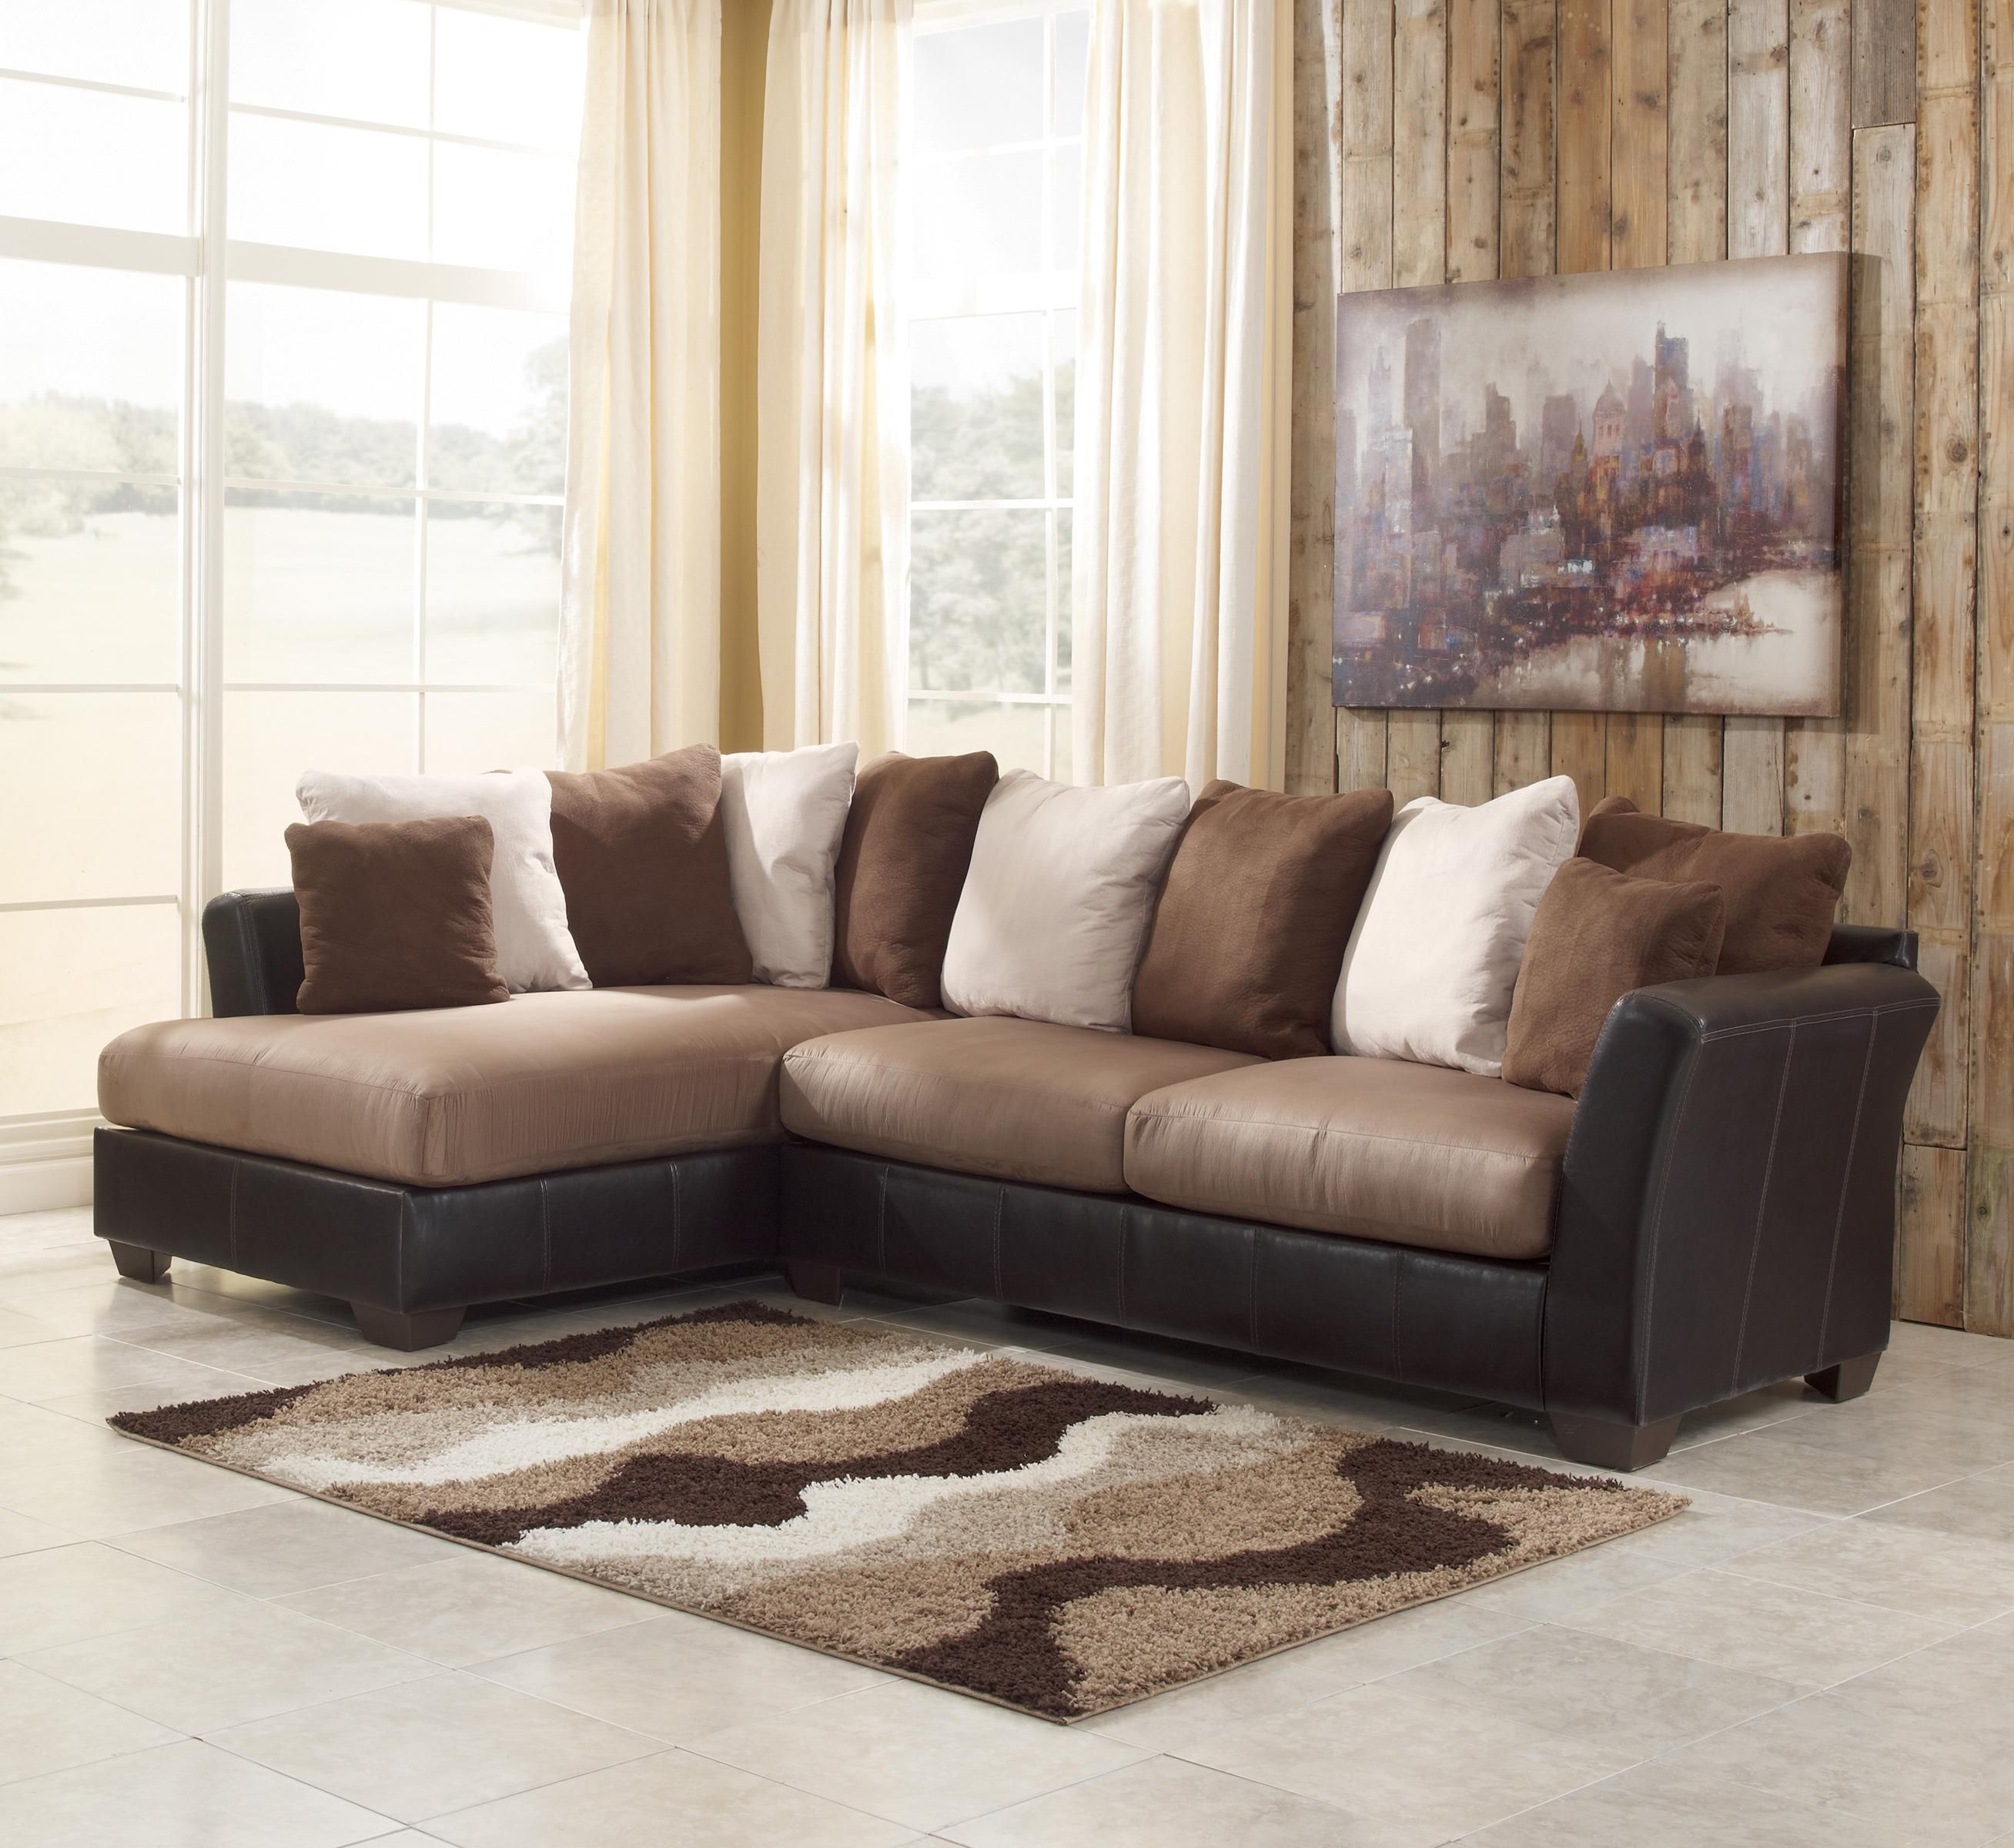 Best Masoli Mocha 2 Piece Sectional With Chaise By Benchcraft Sofa Bed Design Ashley Furniture 400 x 300